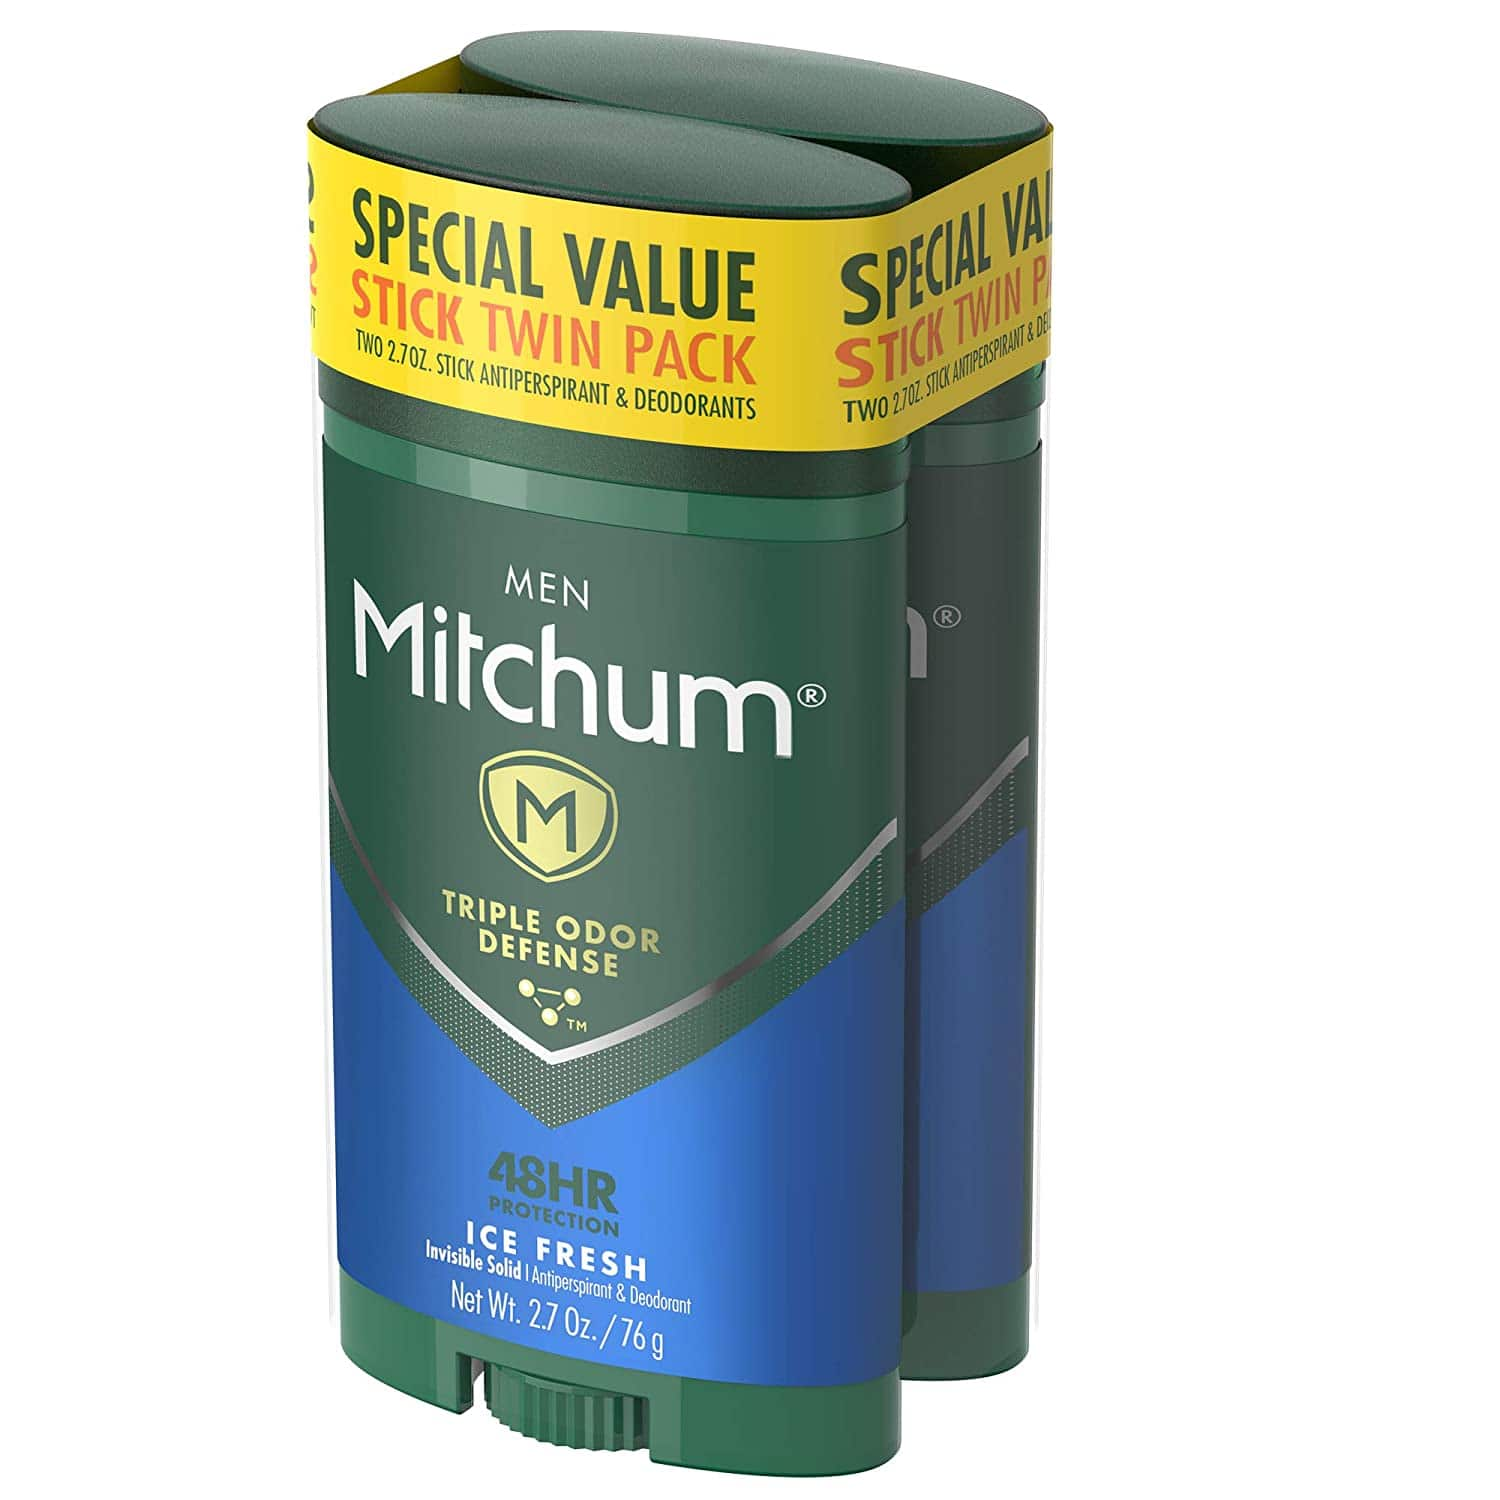 Mitchum Antiperspirant Deodorant Stick for Men, Triple Odor Defense Invisible Solid, 48 Hr Protection, Ice Fresh, 2.7 oz (pack of 2) YMMV $3.59 at Amazon FS w Prime